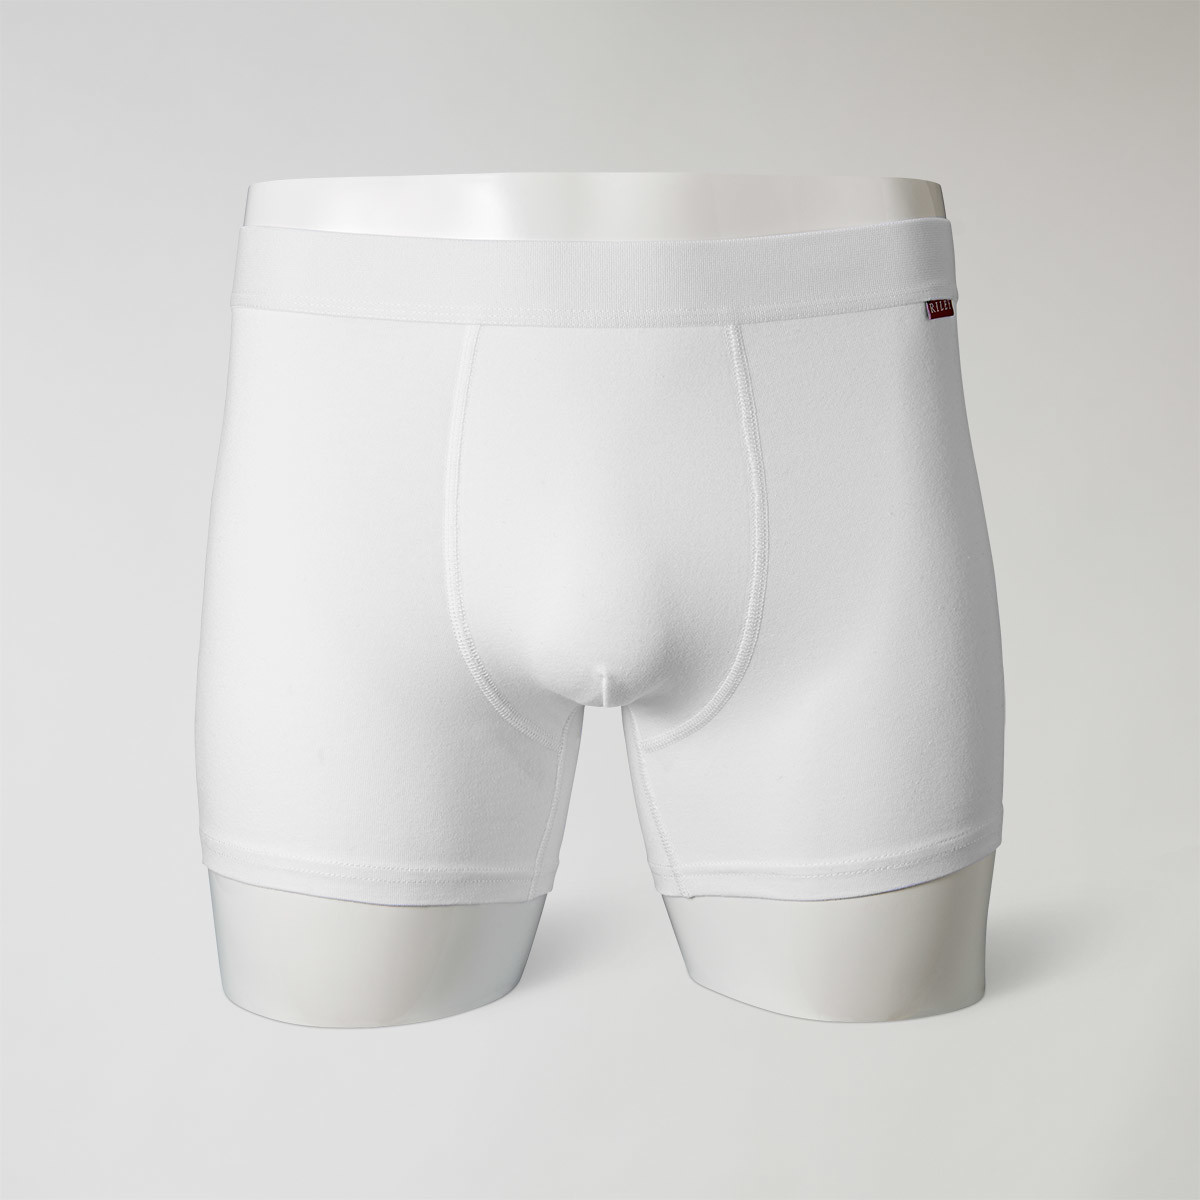 Kalsonger boxer brief vit